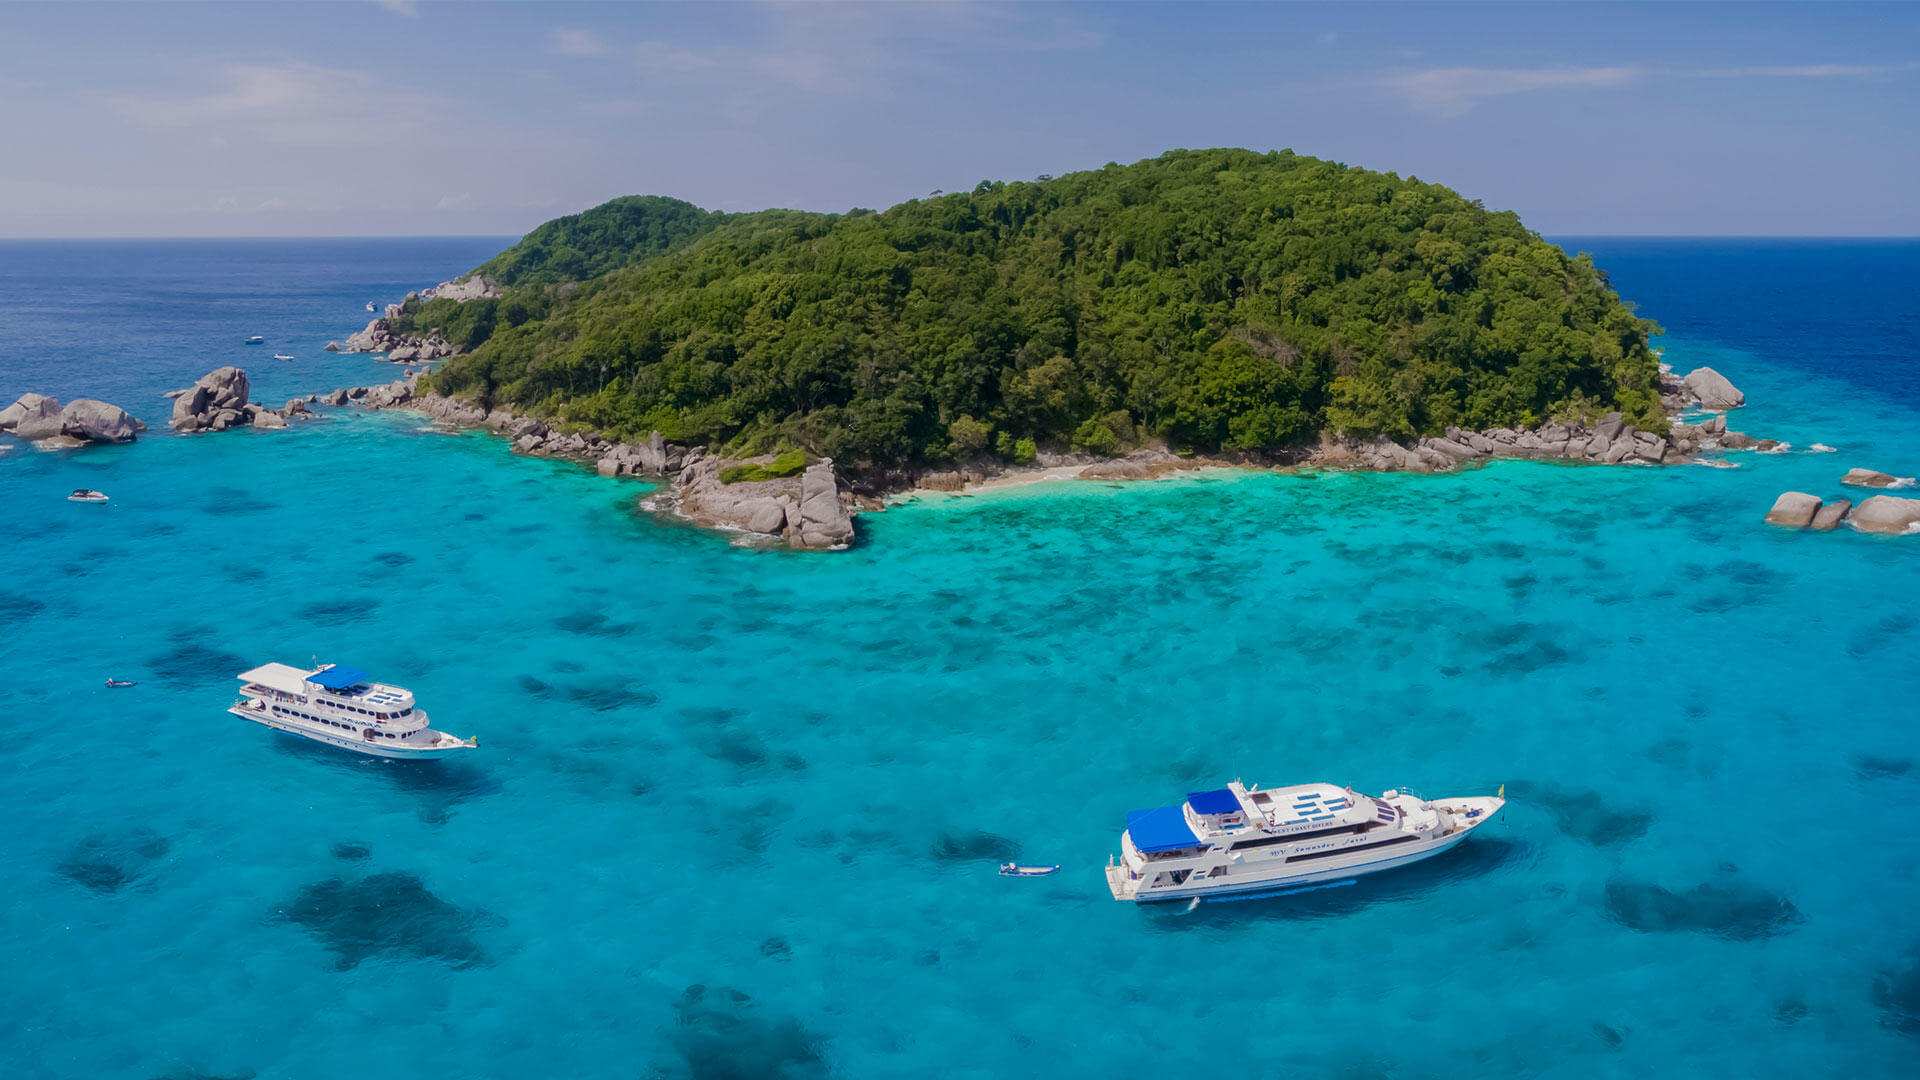 Liveaboard Similan Islands